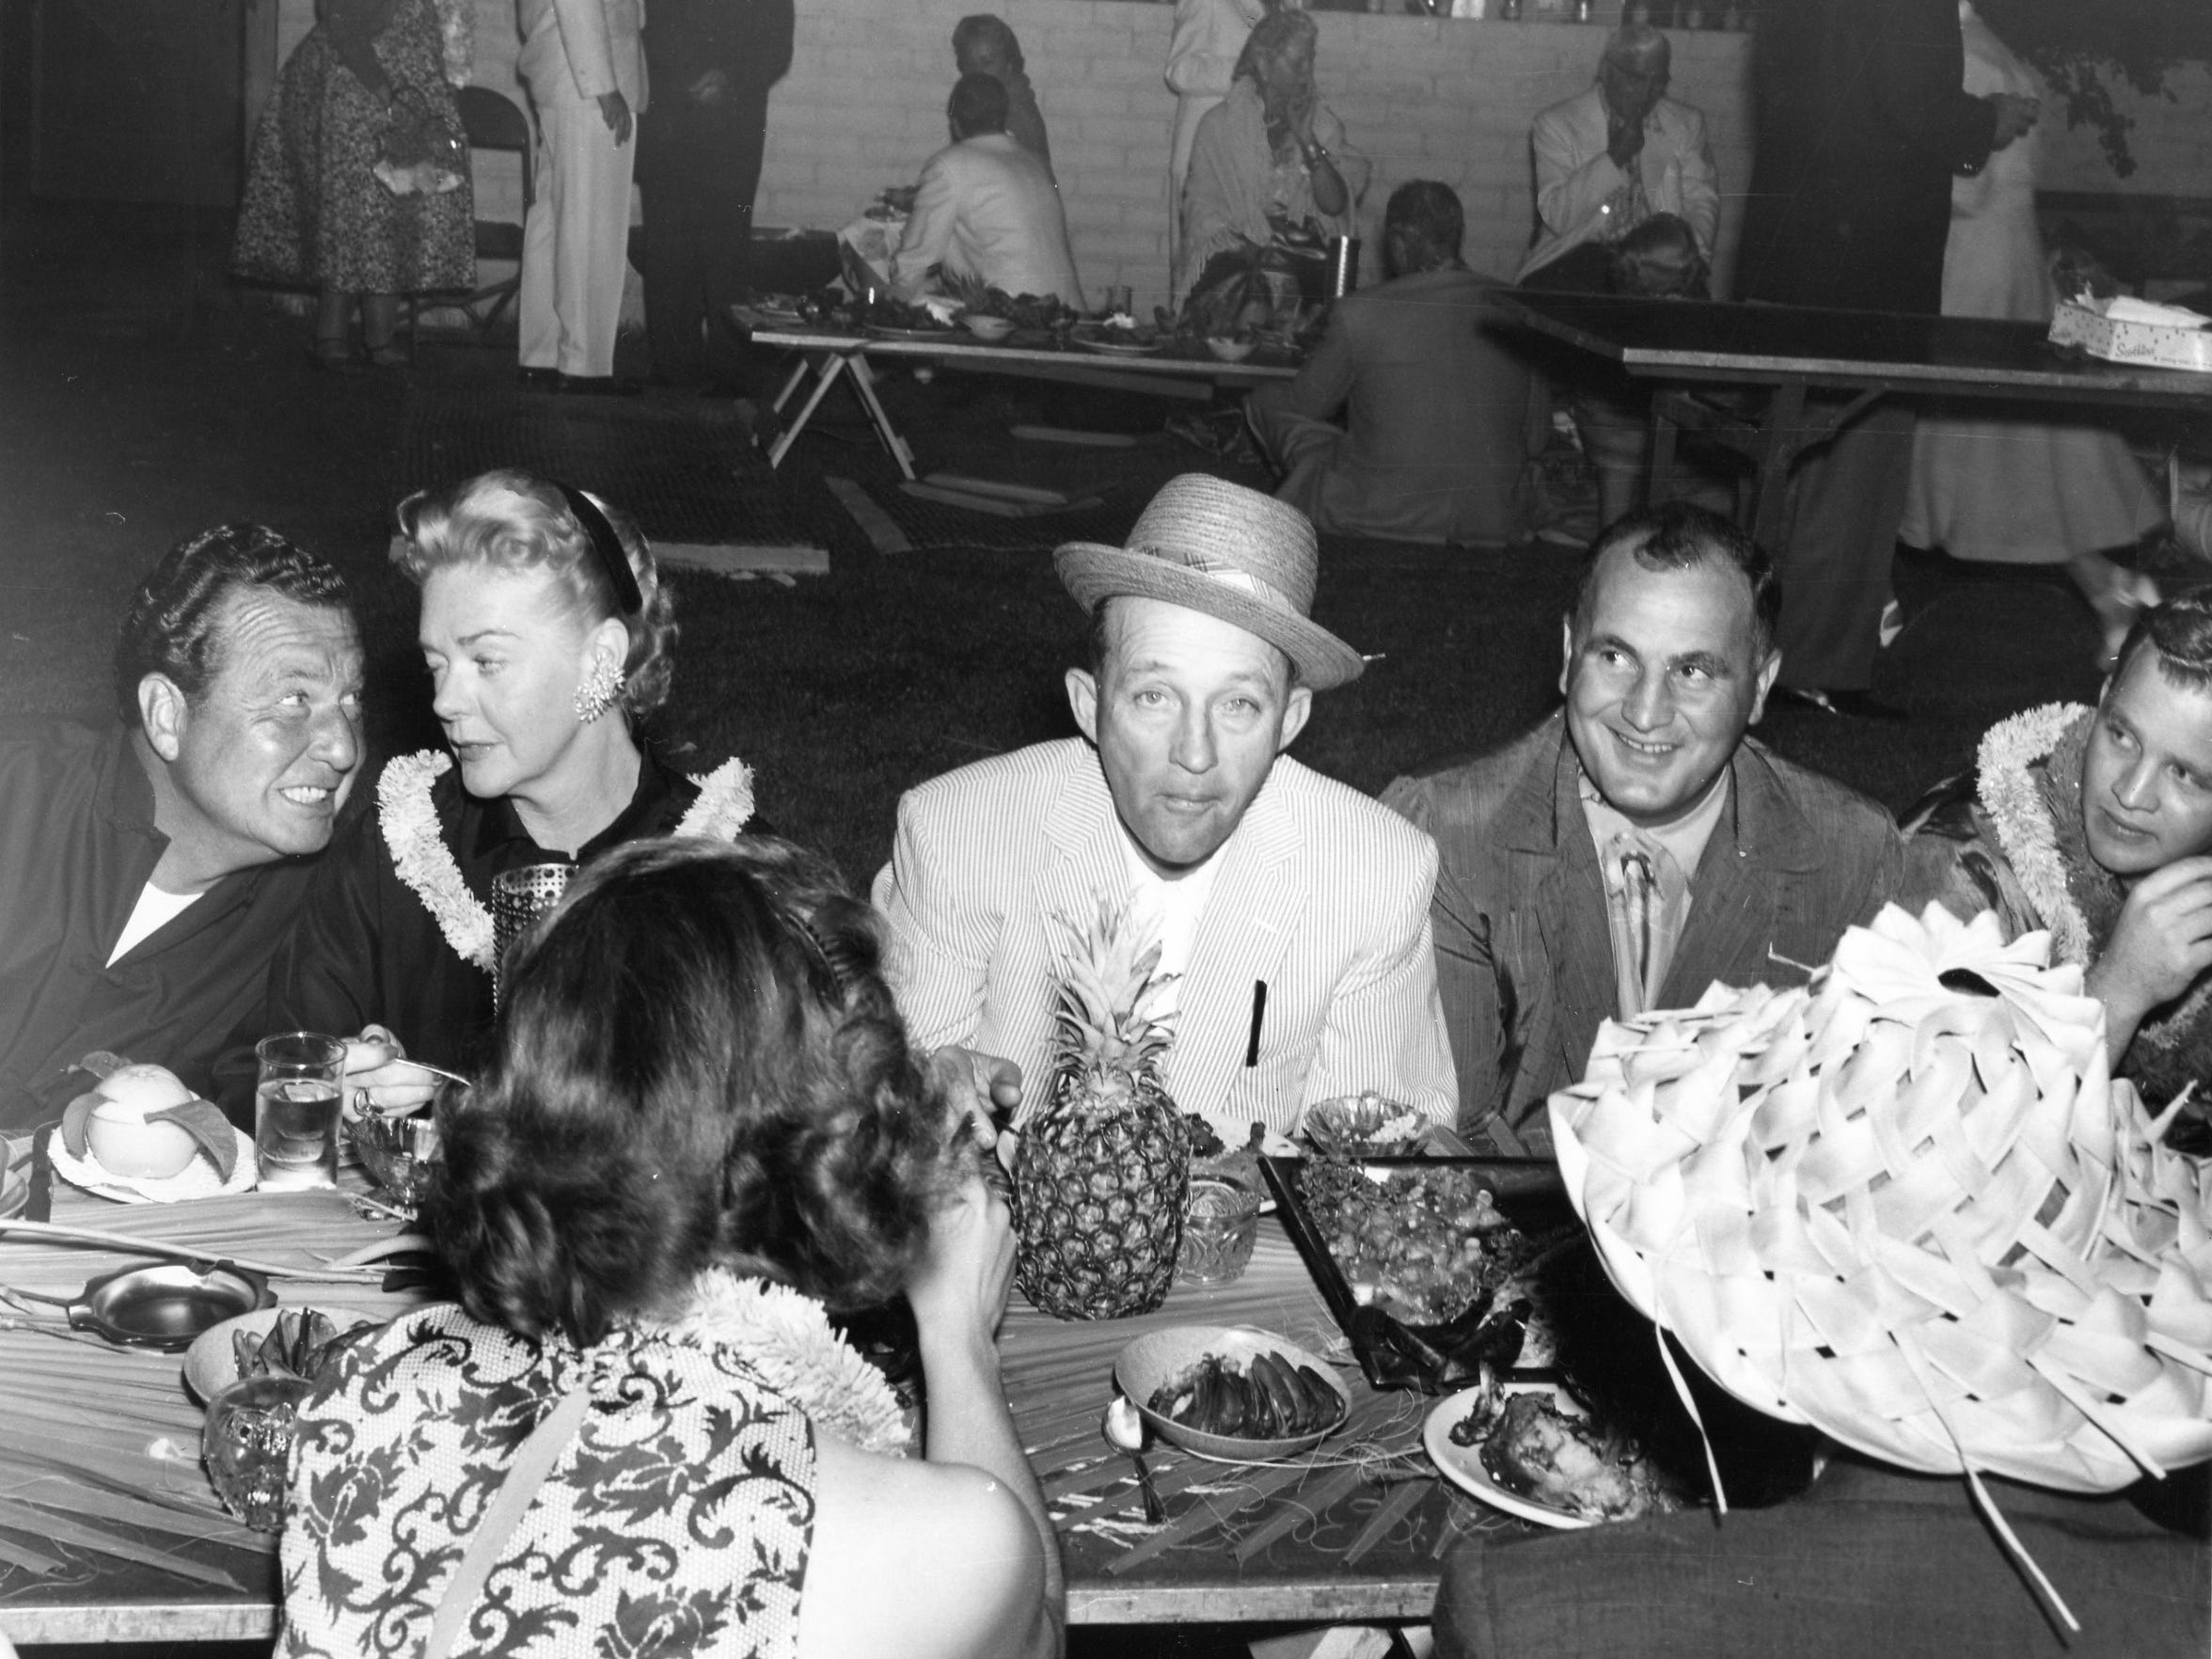 Singer Bing Crosby (center) hosted Attorney General Robert Kennedy at his Palm Desert home according to former FBI agent Clayton Taylor.